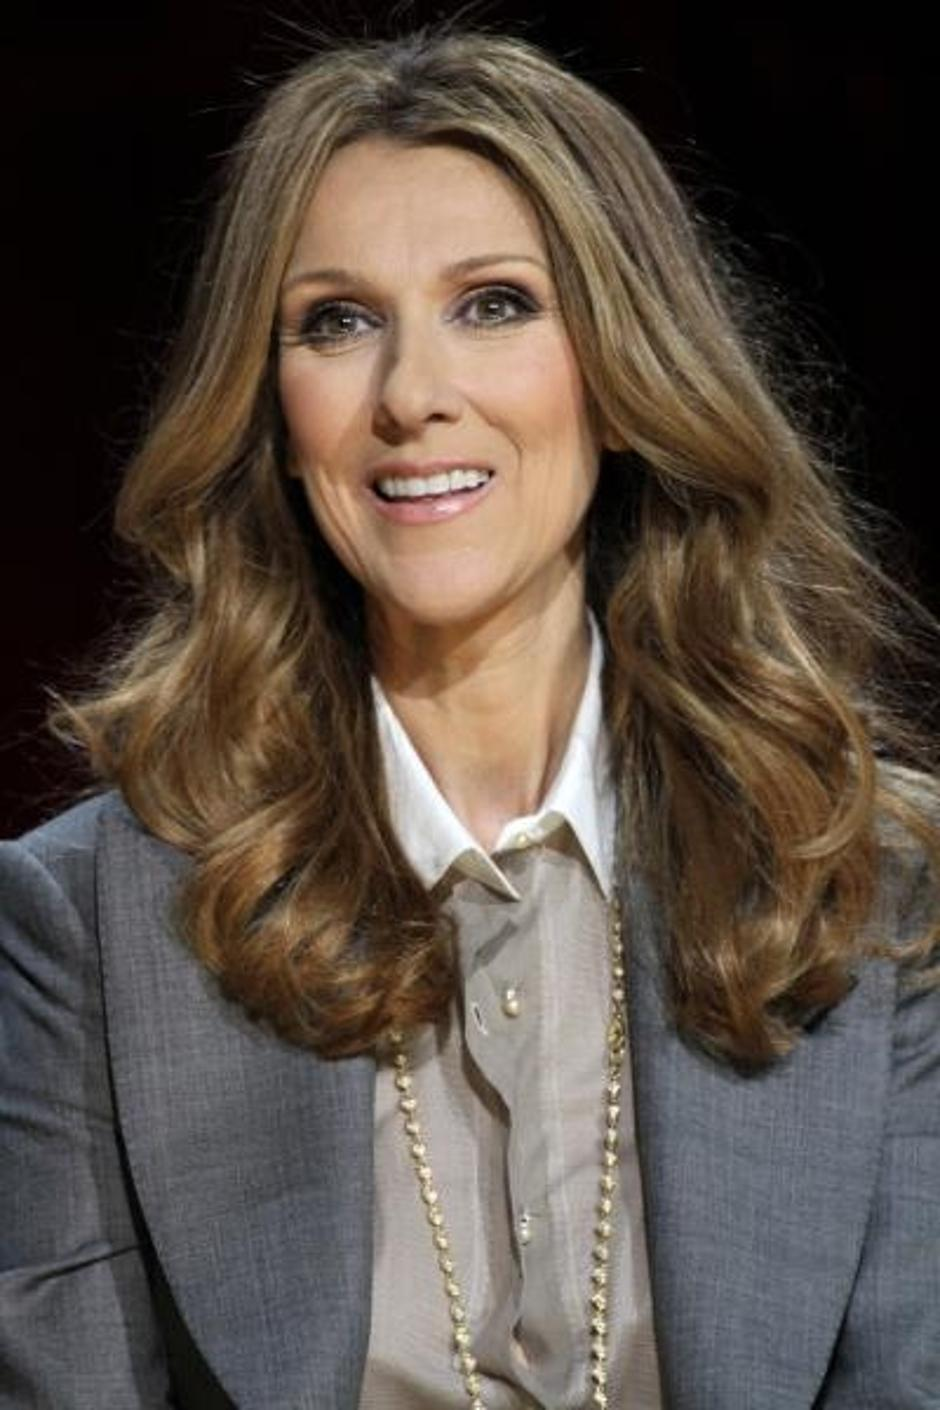 Celine Dion | Author: AJM/Press Association/PIXSELL